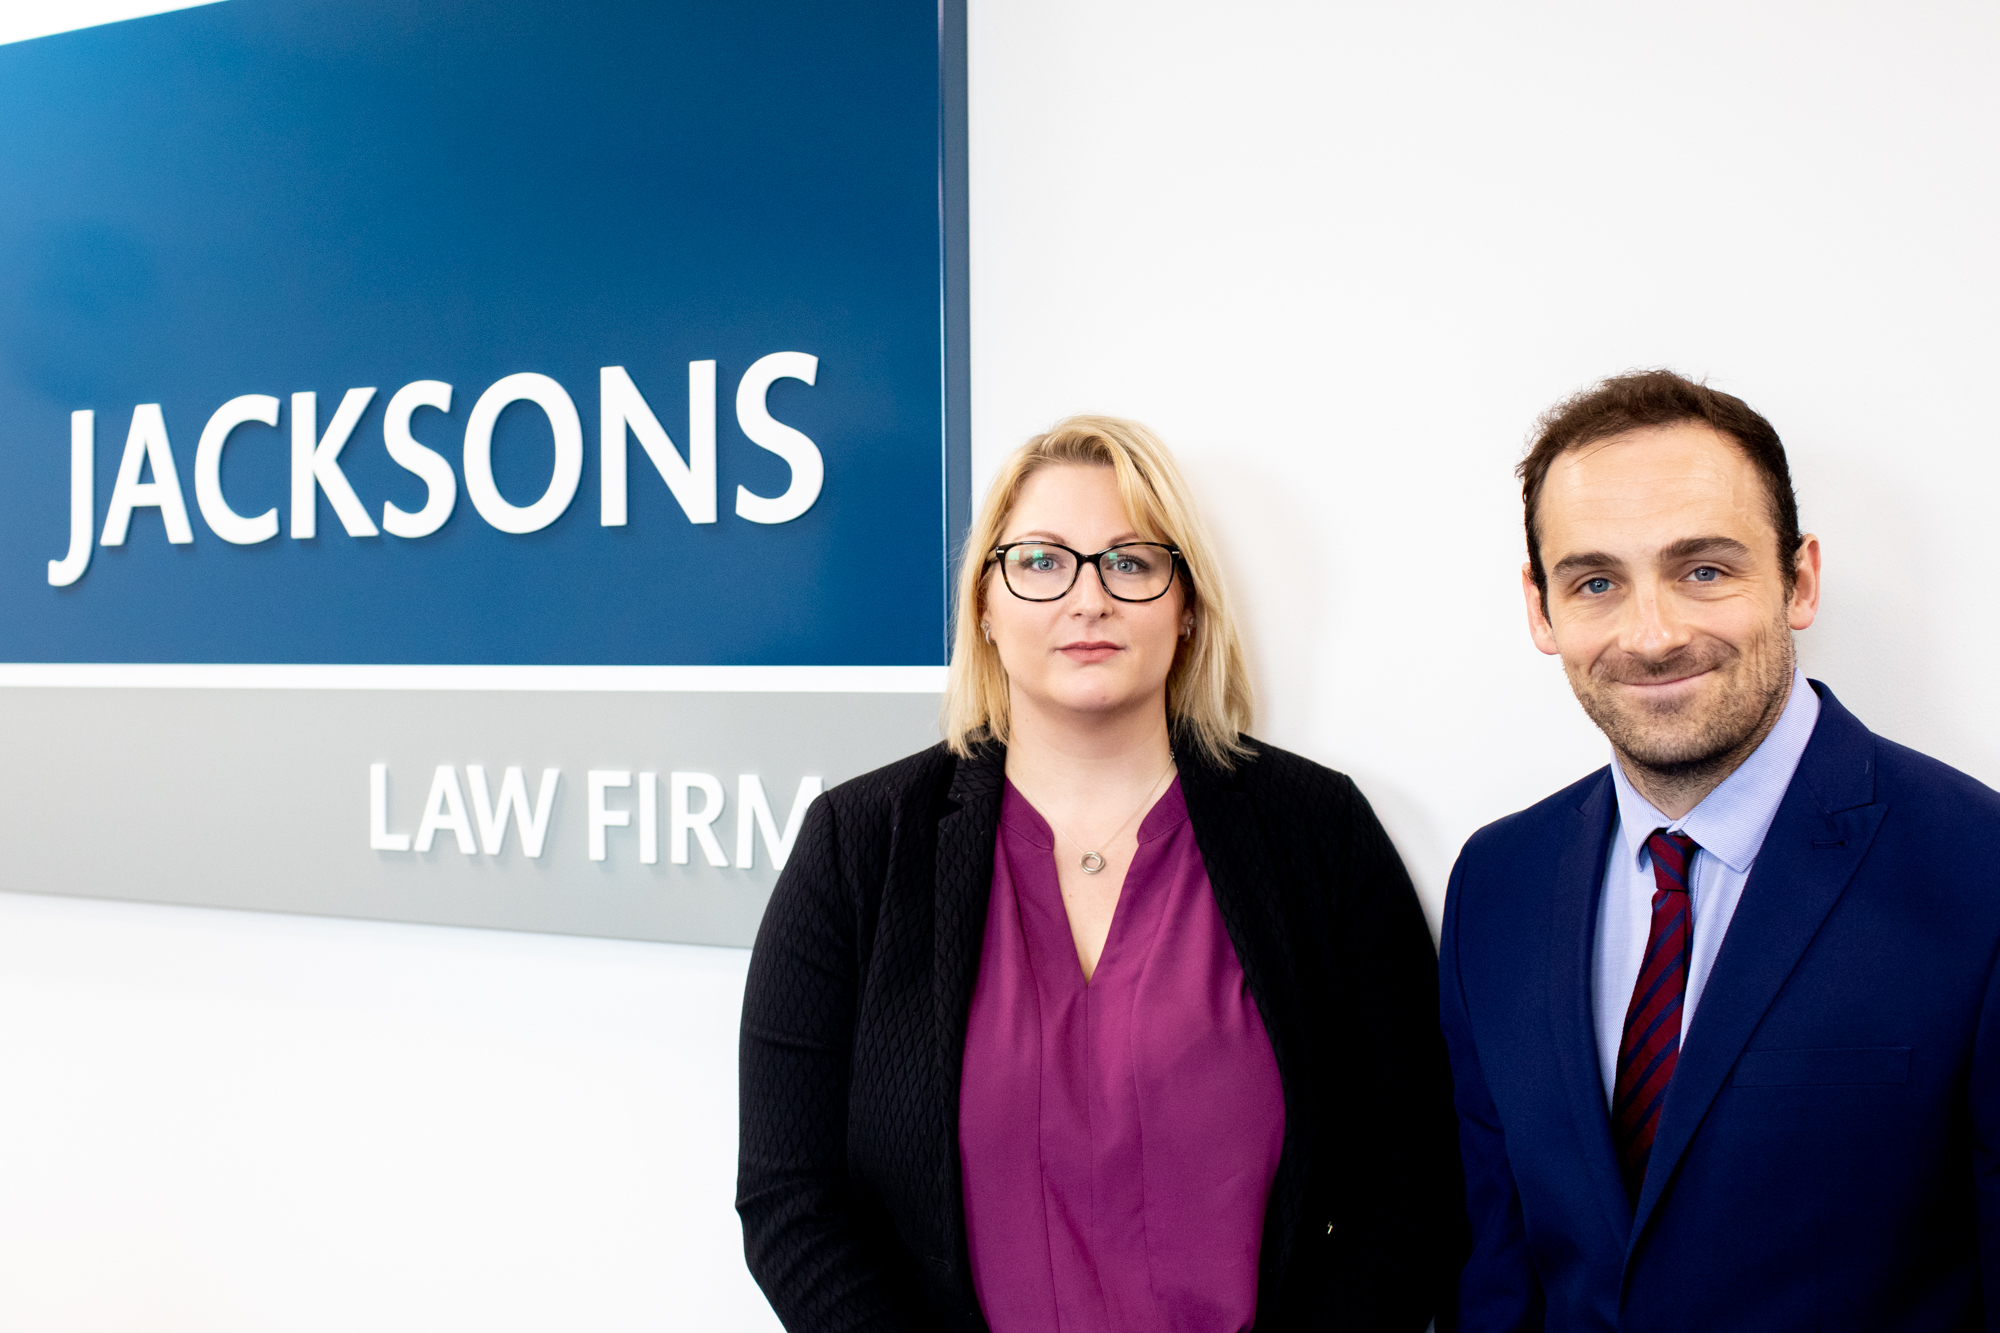 Jacksons Law Firm strengthens its legal offering with two key appointments